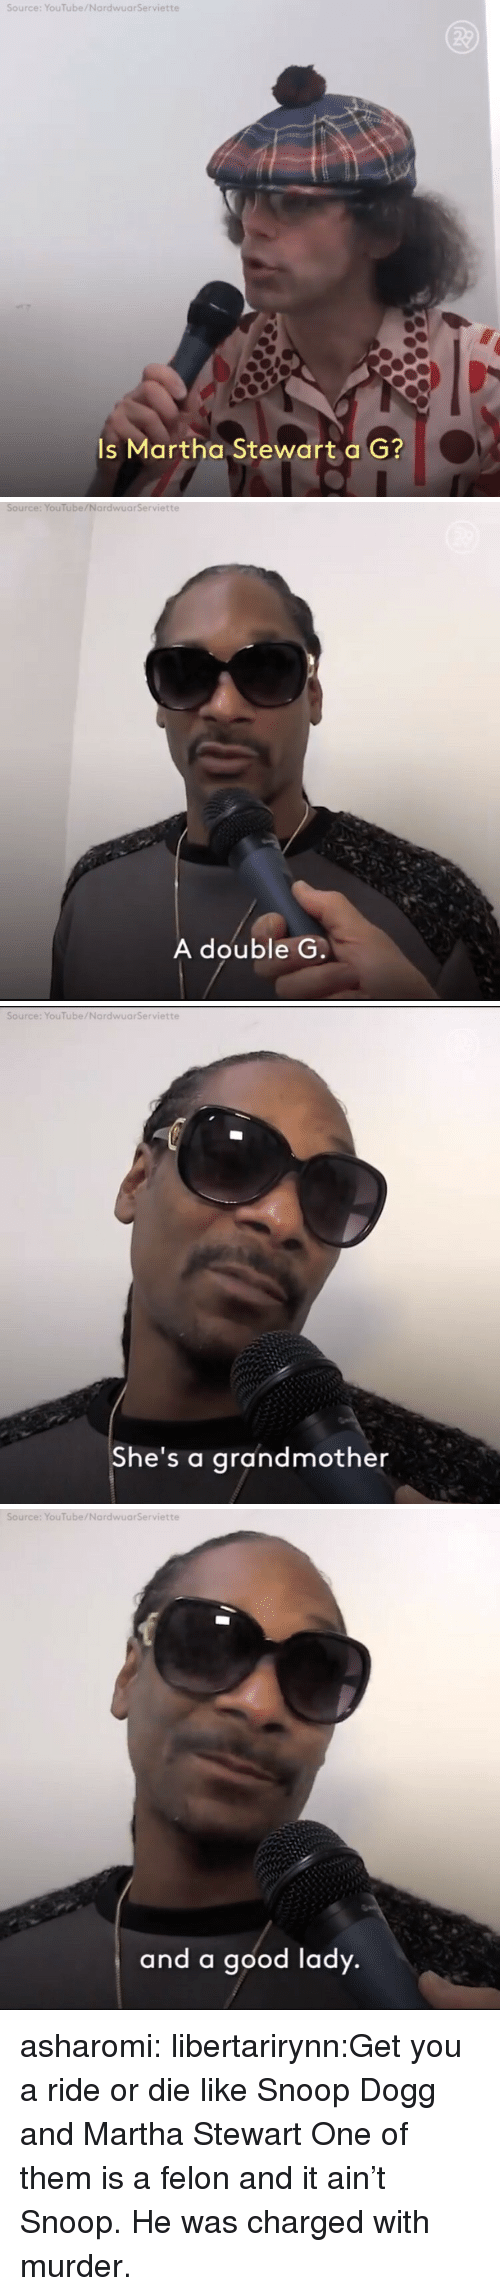 Snoop, Snoop Dogg, and Tumblr: Source: YouTube/NardwuarServiette  Is Martha Stewart a G?   Source: YouTube/NardwuarServiette  A double G   Source: YouTube/NardwuarServiette  She's a grandmother   Source: YouTube/NardwuarServiette  and a good lady asharomi:  libertarirynn:Get you a ride or die like Snoop Dogg and Martha Stewart  One of them is a felon and it ain't Snoop.  He was charged with murder.